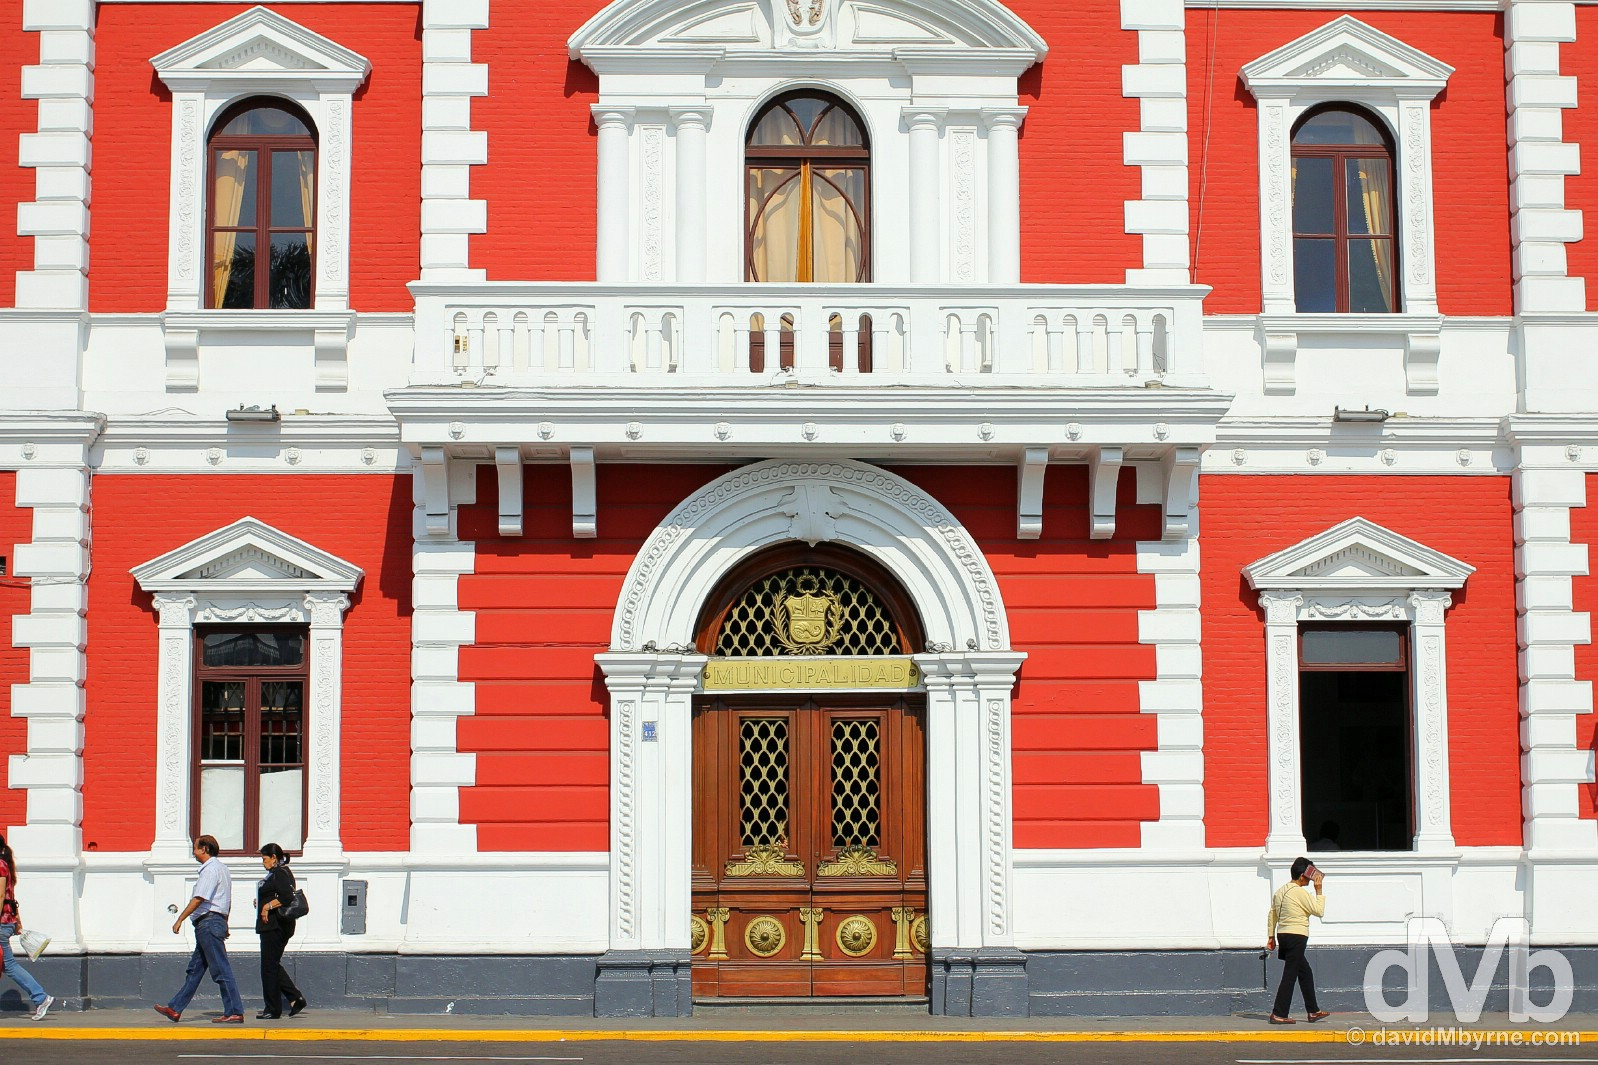 The Municipalidad building on Plaza Major in the city of Trujillo, northwestern Peru. July 31, 2015.